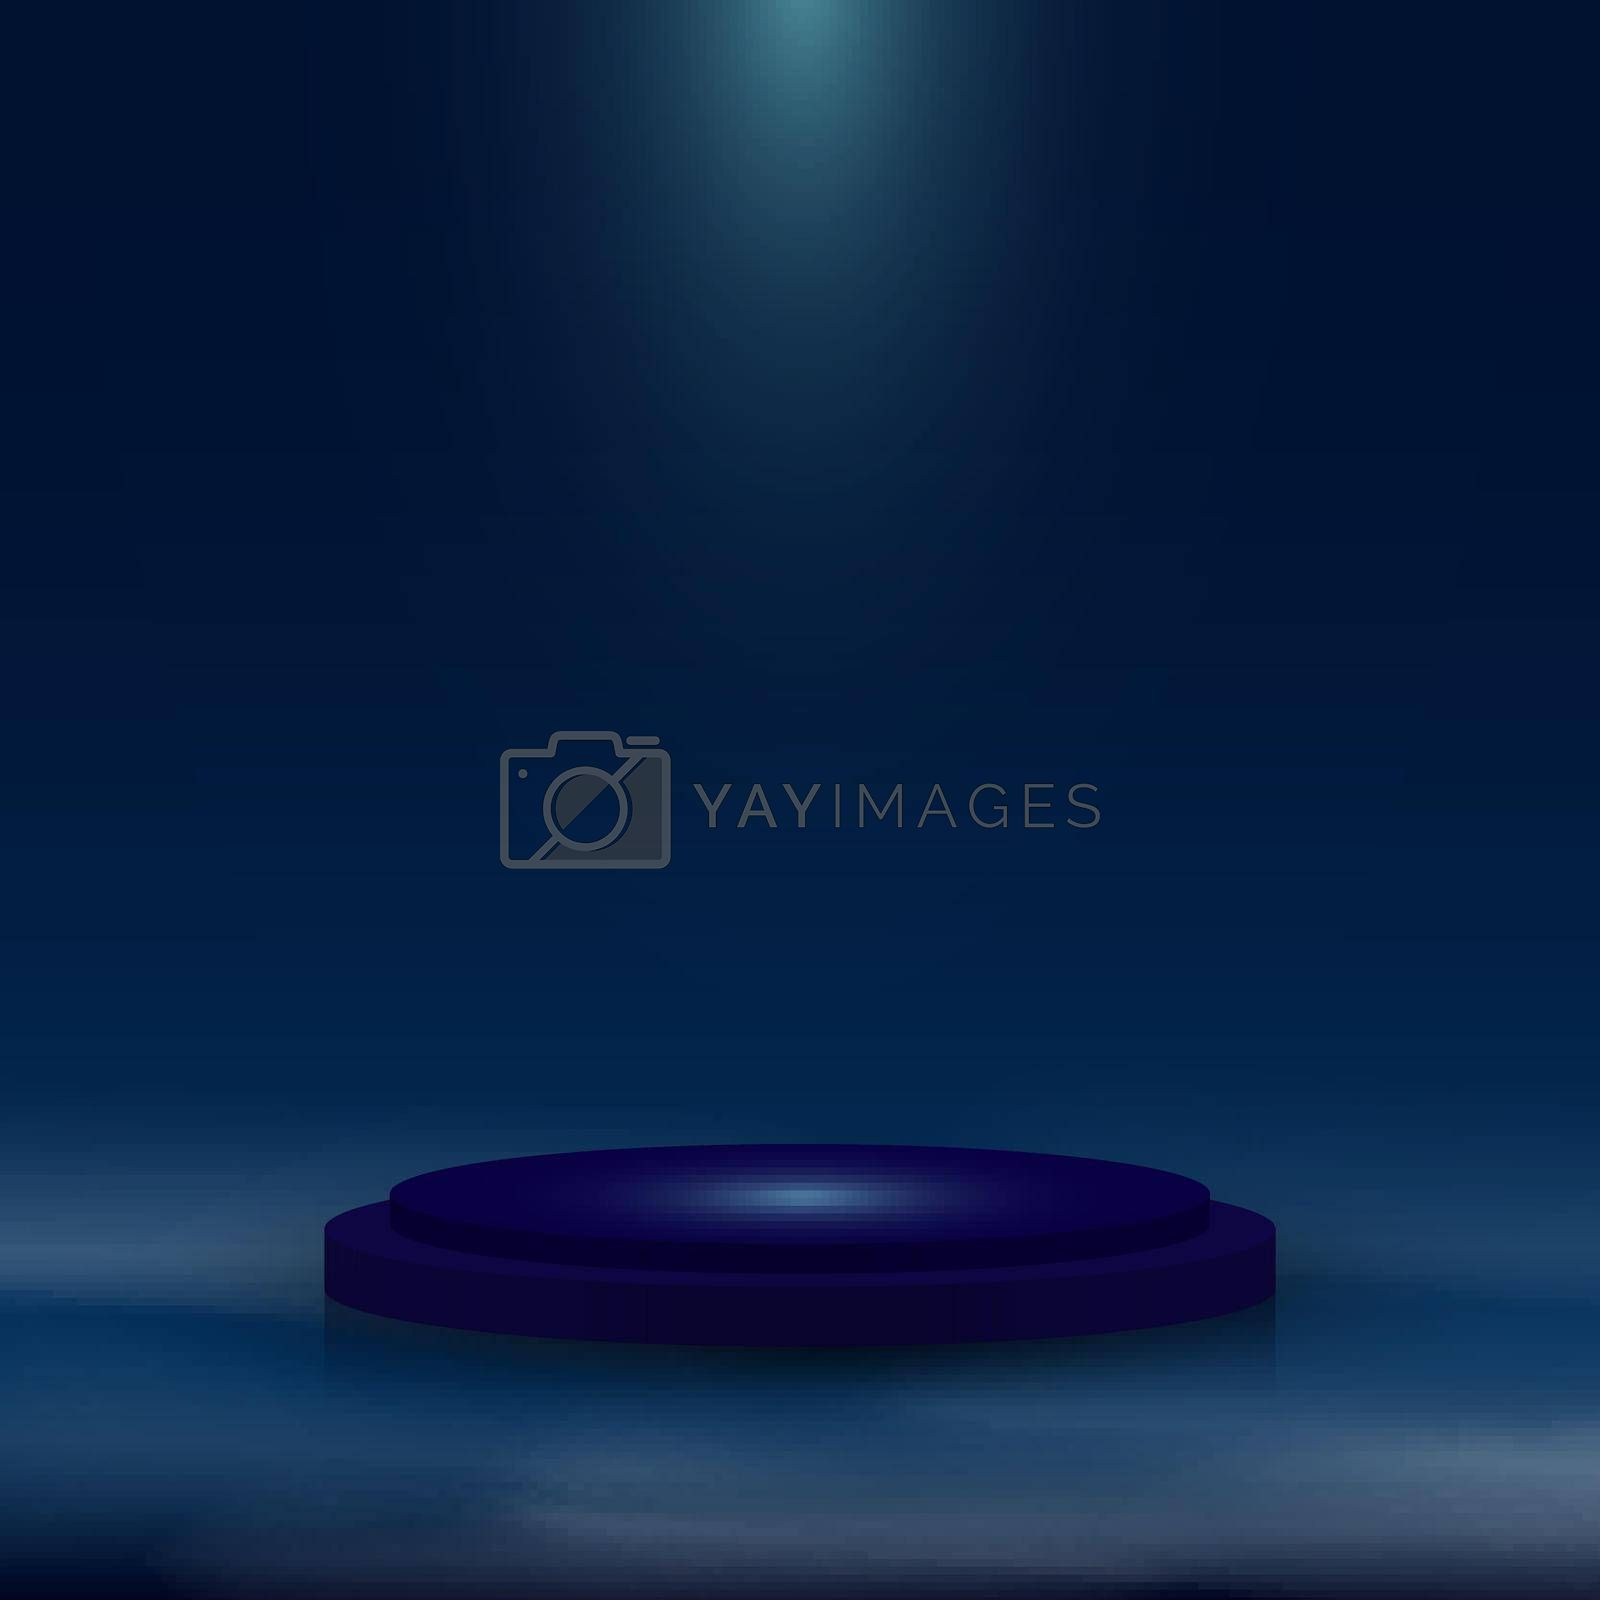 Royalty free image of 3D realistic blue pedestal with lighting and mist on dark blue background by phochi